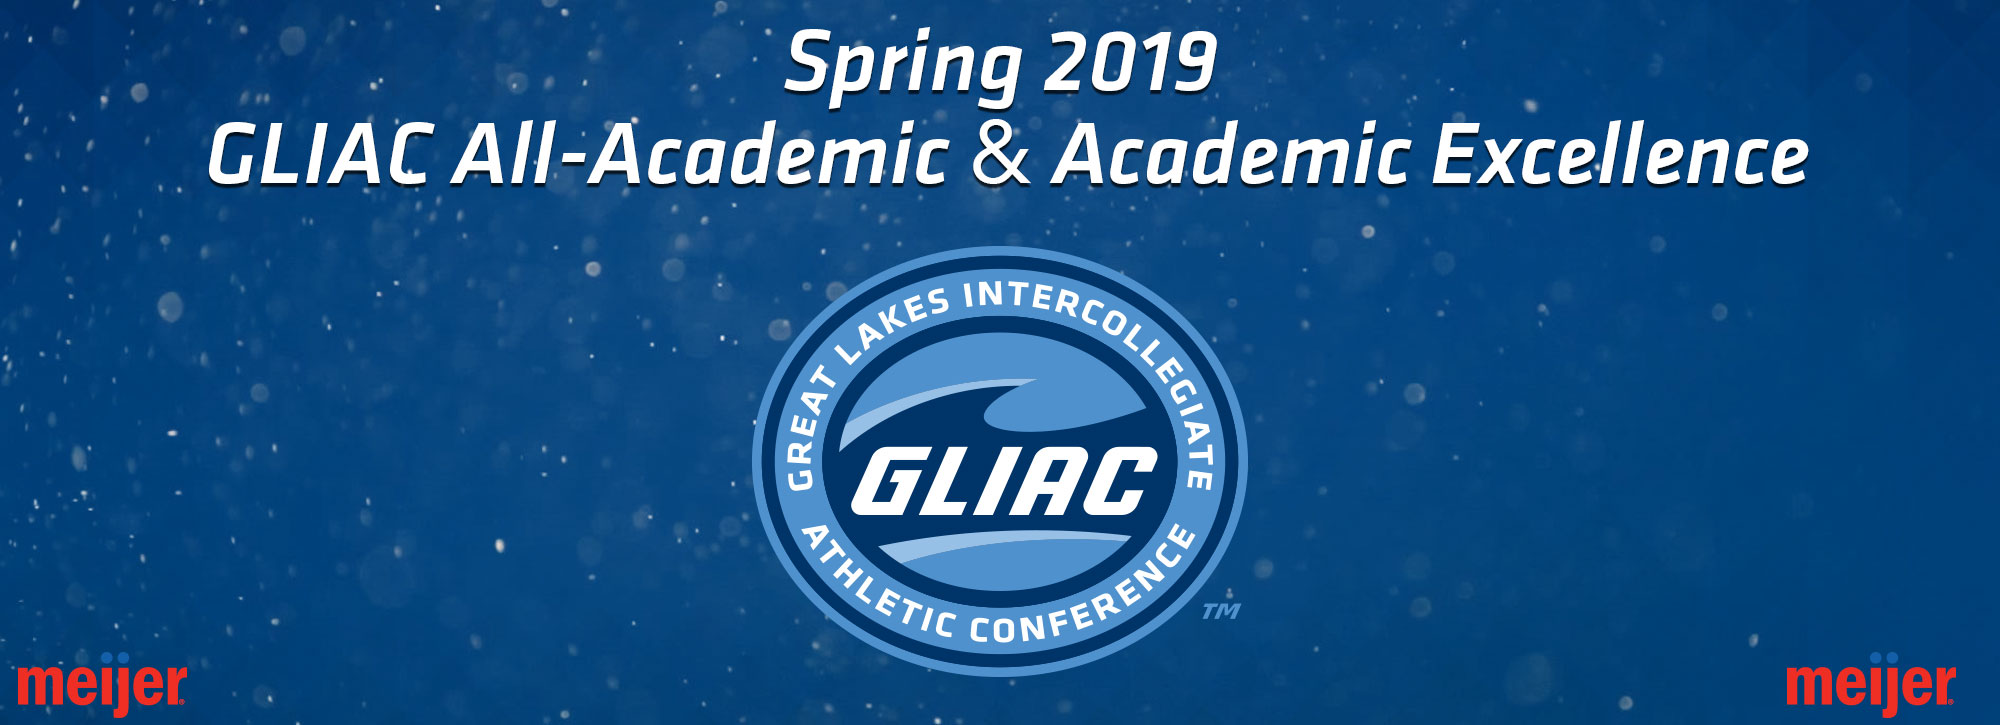 GLIAC lauds 814 Spring 2019 All-Academic & Academic Excellence Honorees